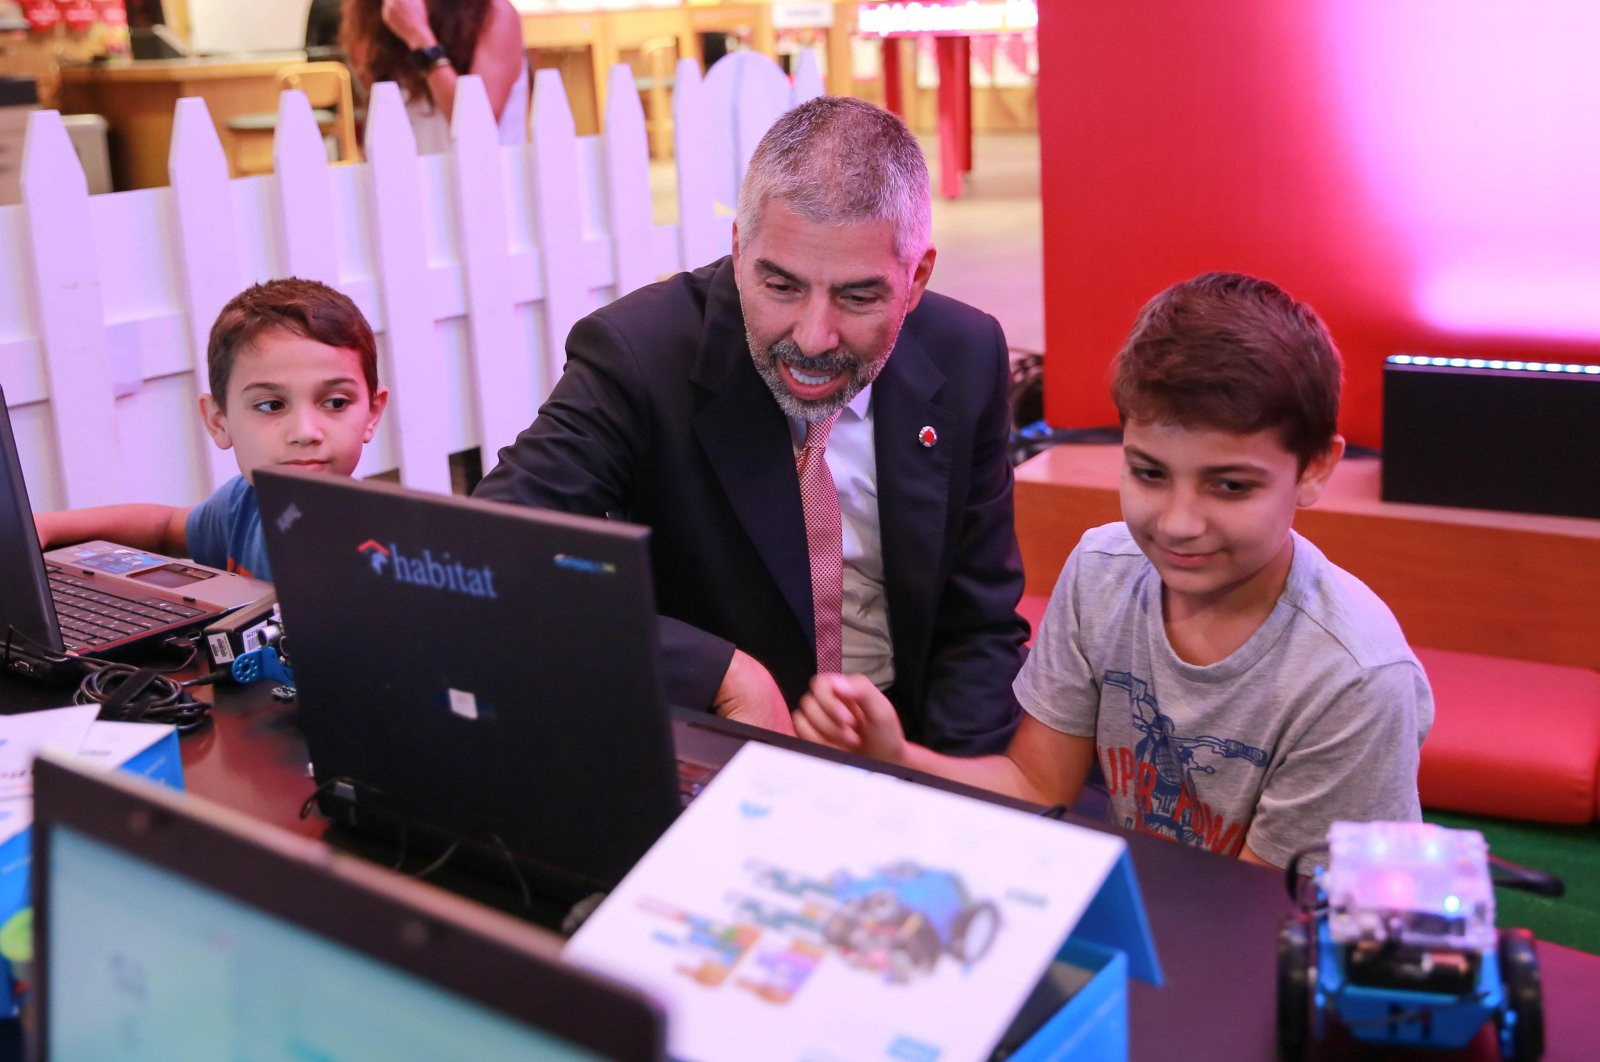 The chairman of Turkey Vodafone Foundation Hasan Süel sits between two children receiving coding courses. (Takvim File Photo)